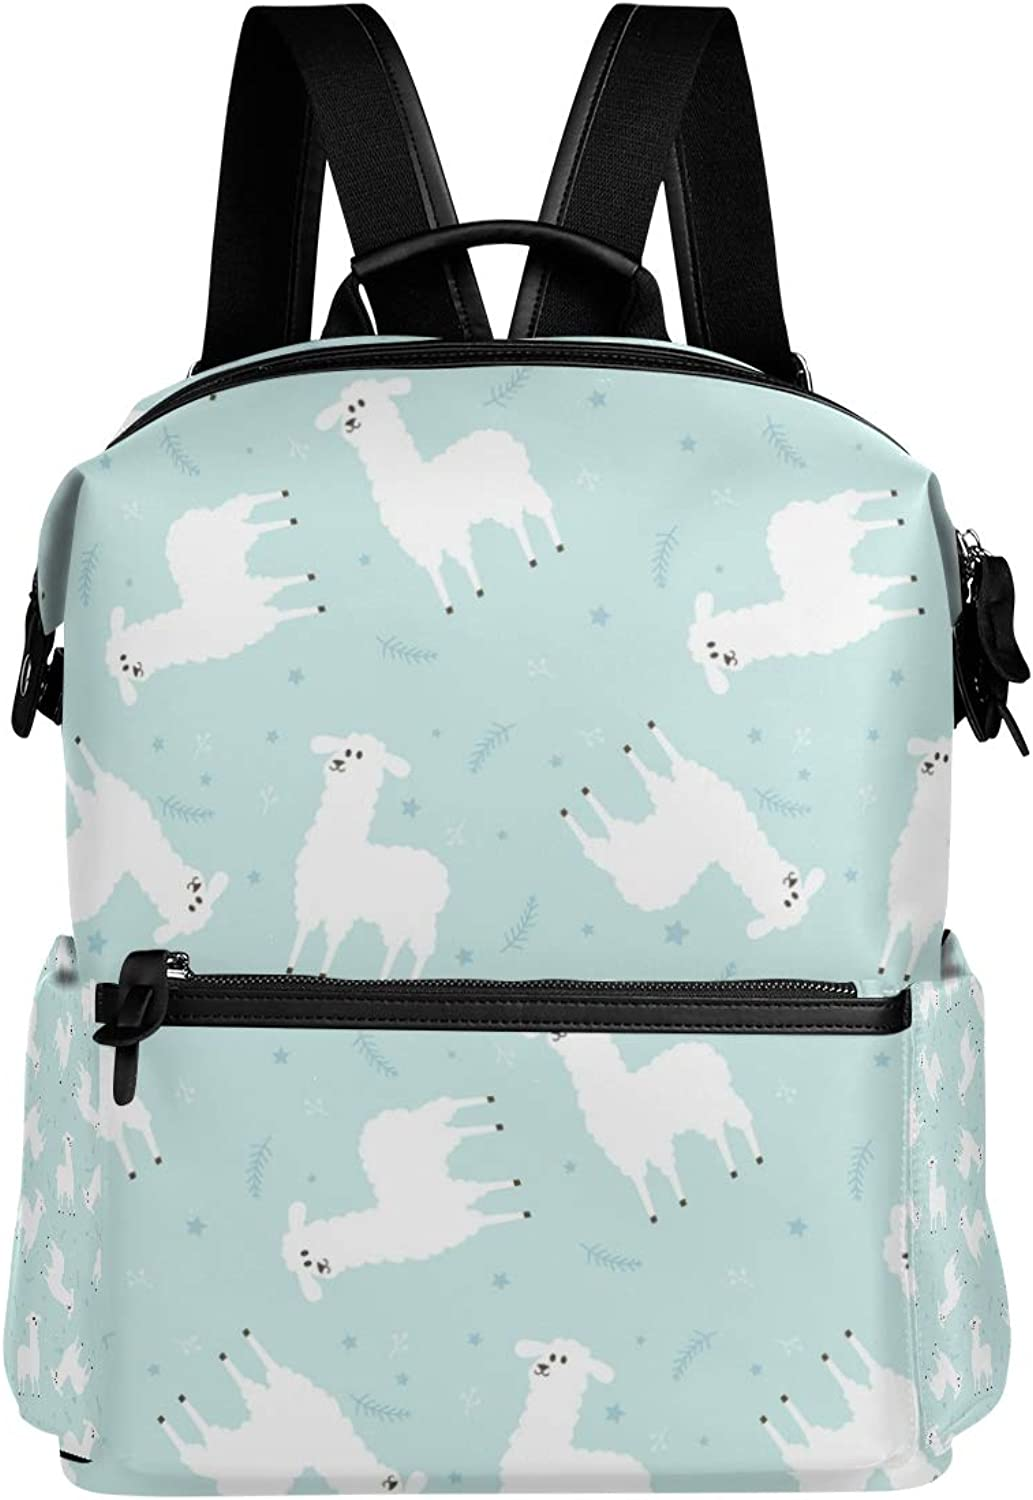 MONTOJ Cute Sheep Aqua Background Leather Travel Bag Campus Backpack